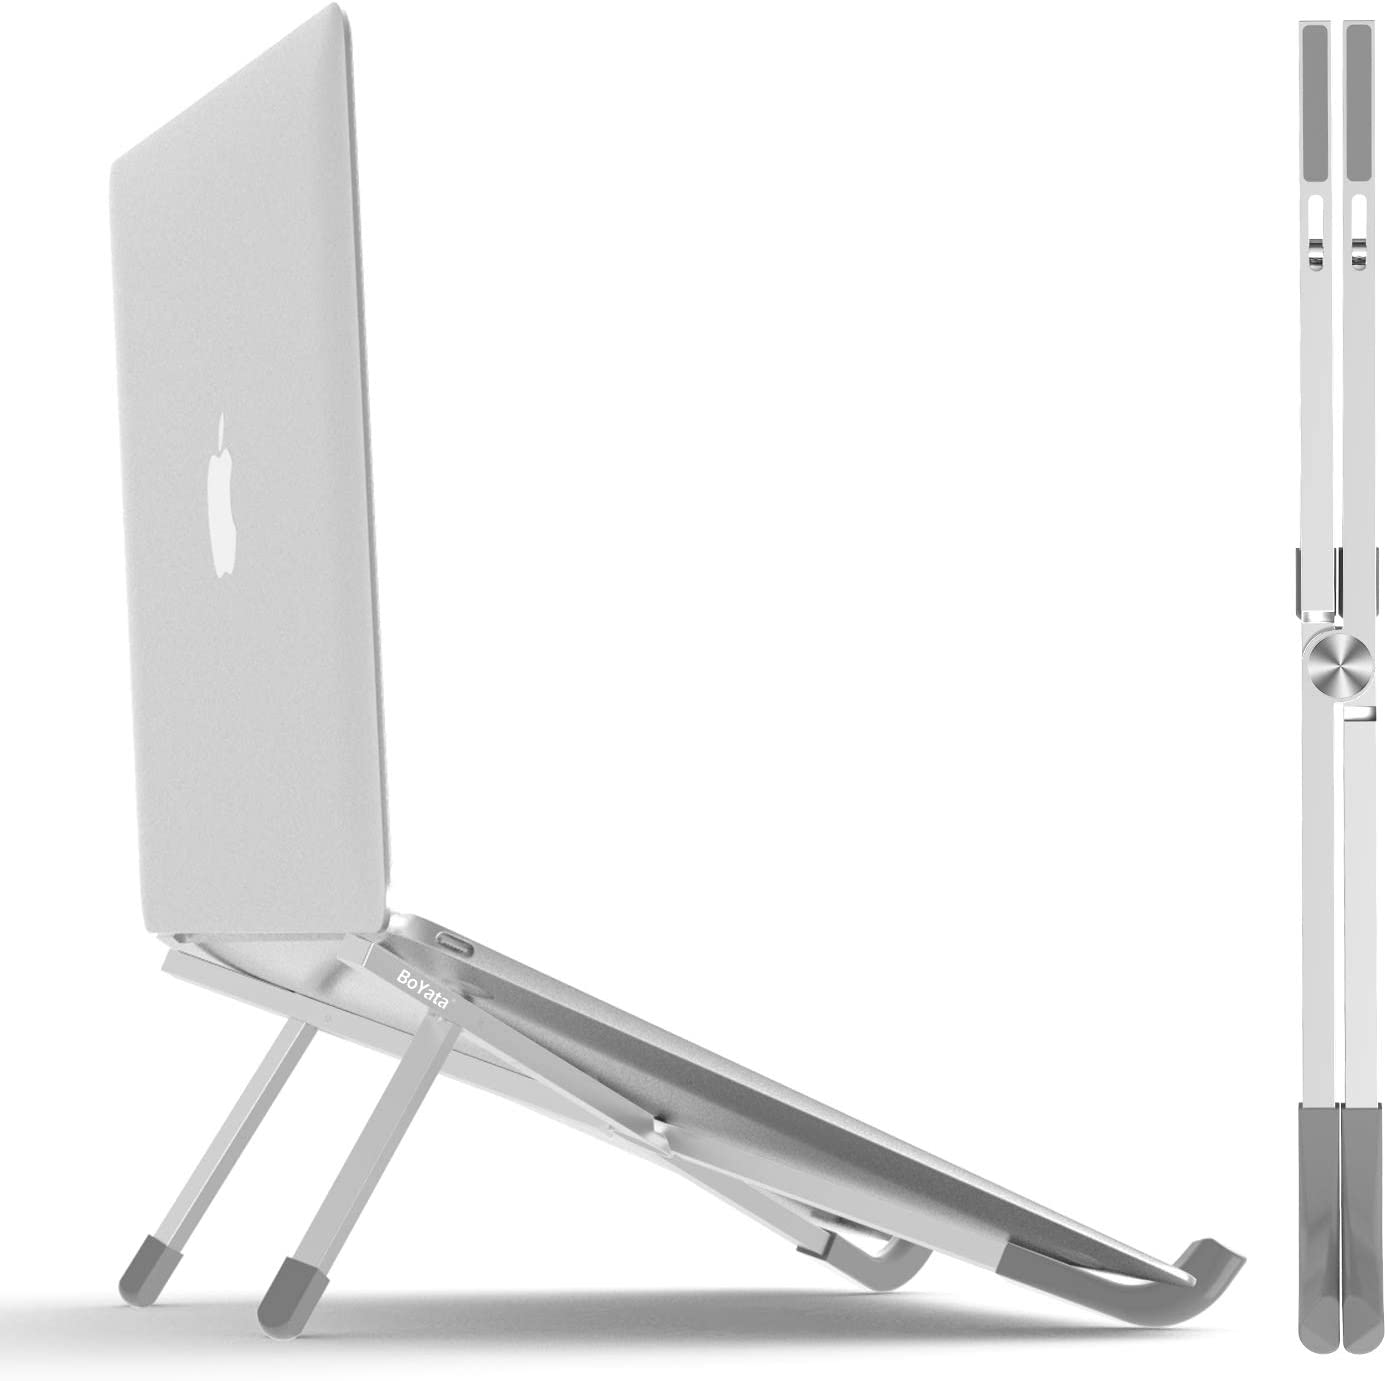 Ranking TOP17 BoYata Laptop Stand Foldable Credence St Tablet Riser Lightweight